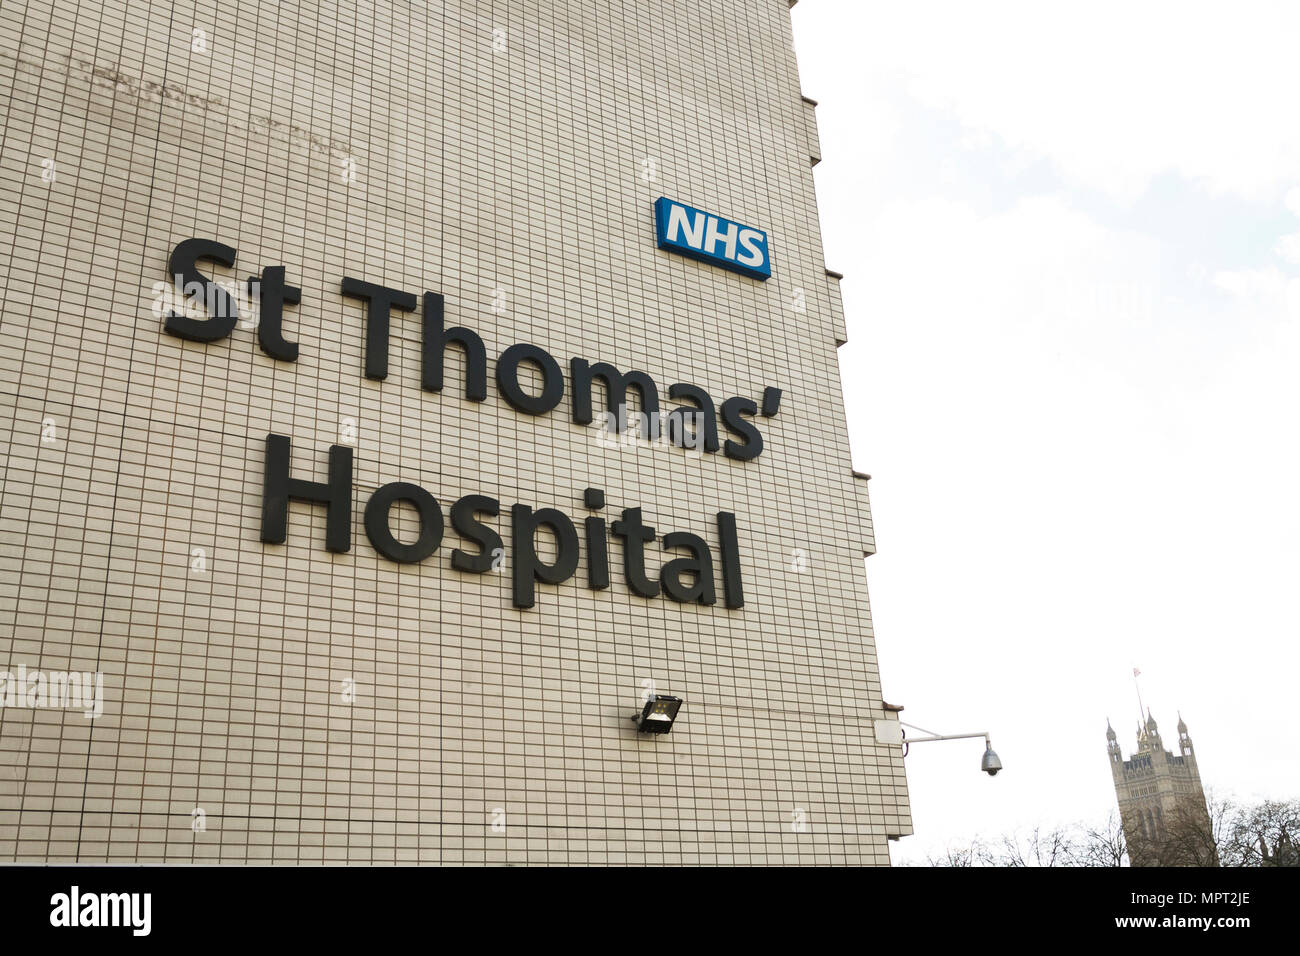 St Thomas Hospital London. - Stock Image